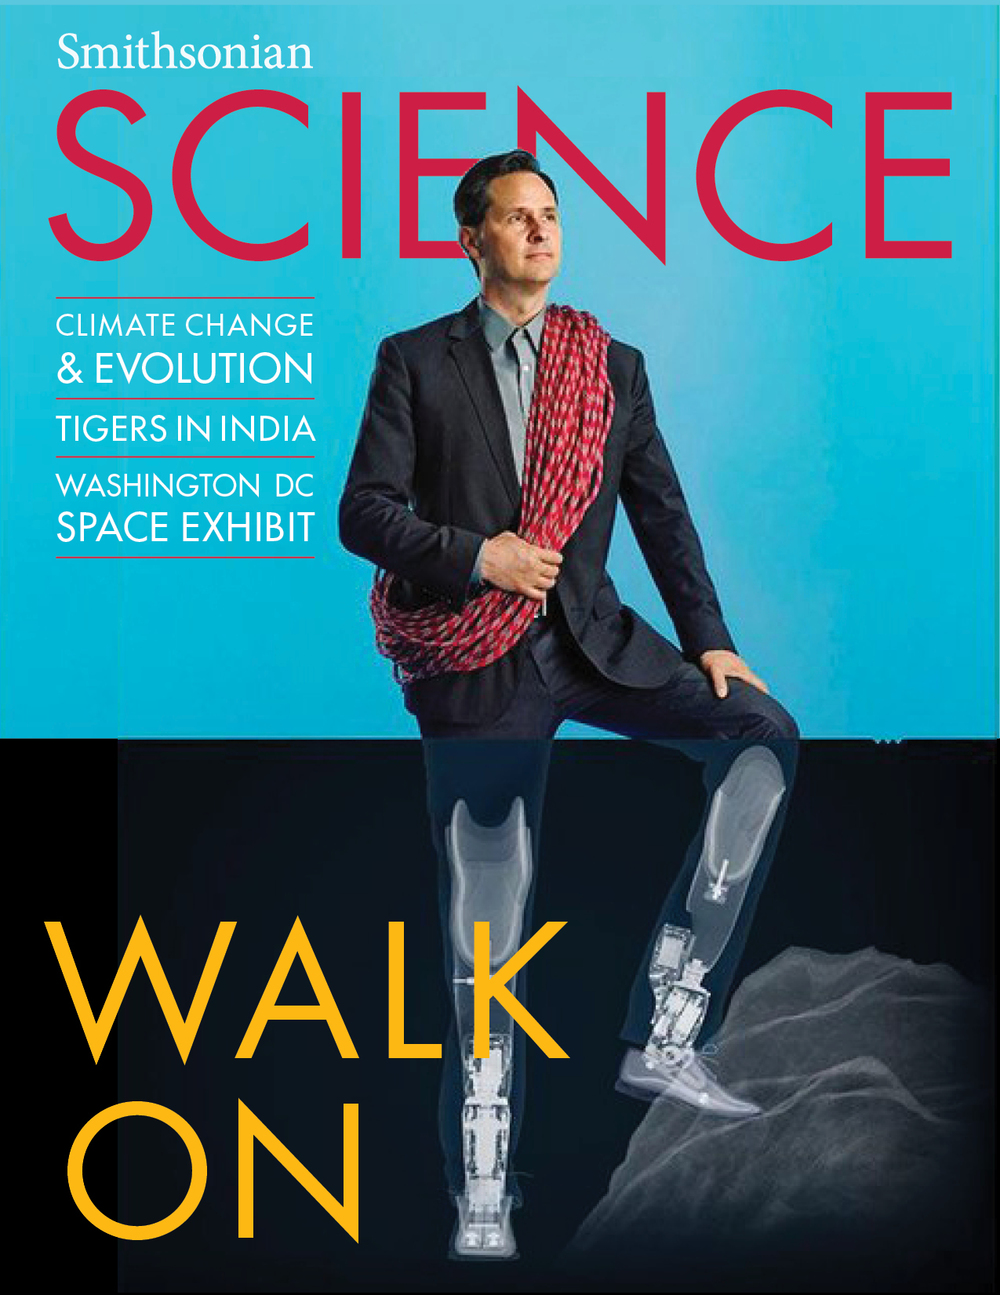 Smithsonian SCIENCE magazine design